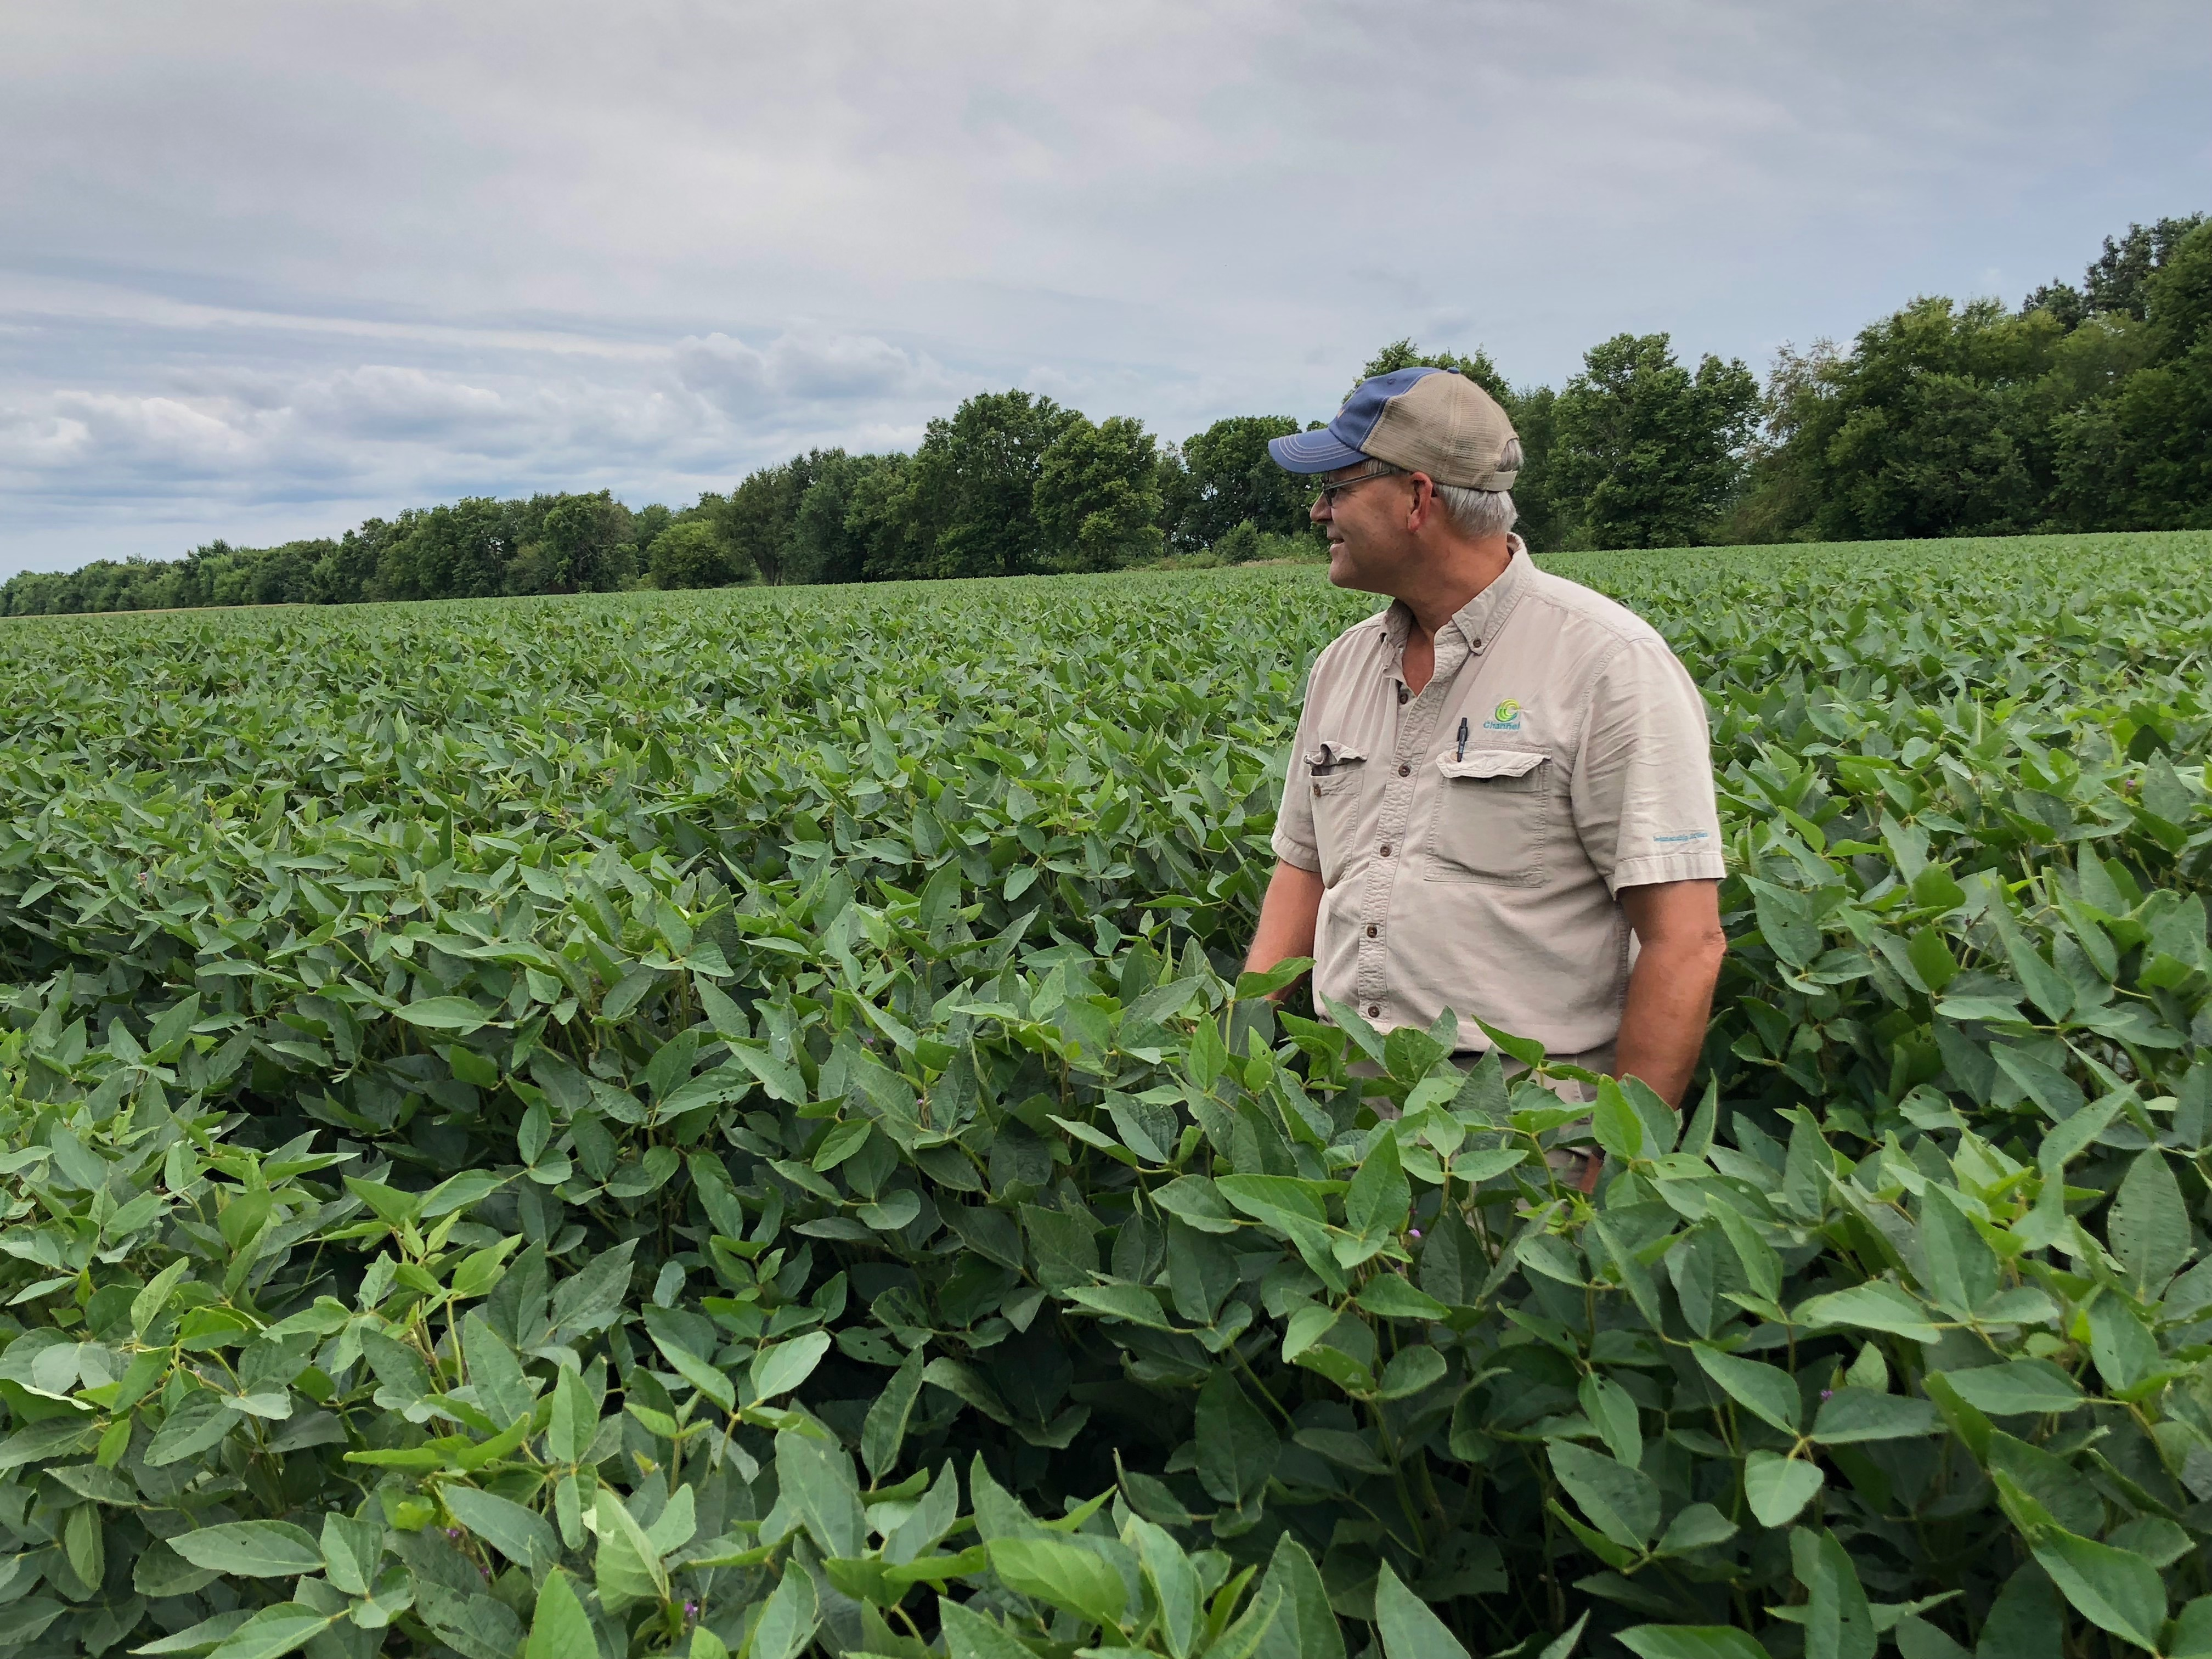 Illinois farmer Mark Reichert stands in his soybean fields. Reichert worries about the long-term impacts of Chinese tariffs, that it could be hard to get Chinese customers back.